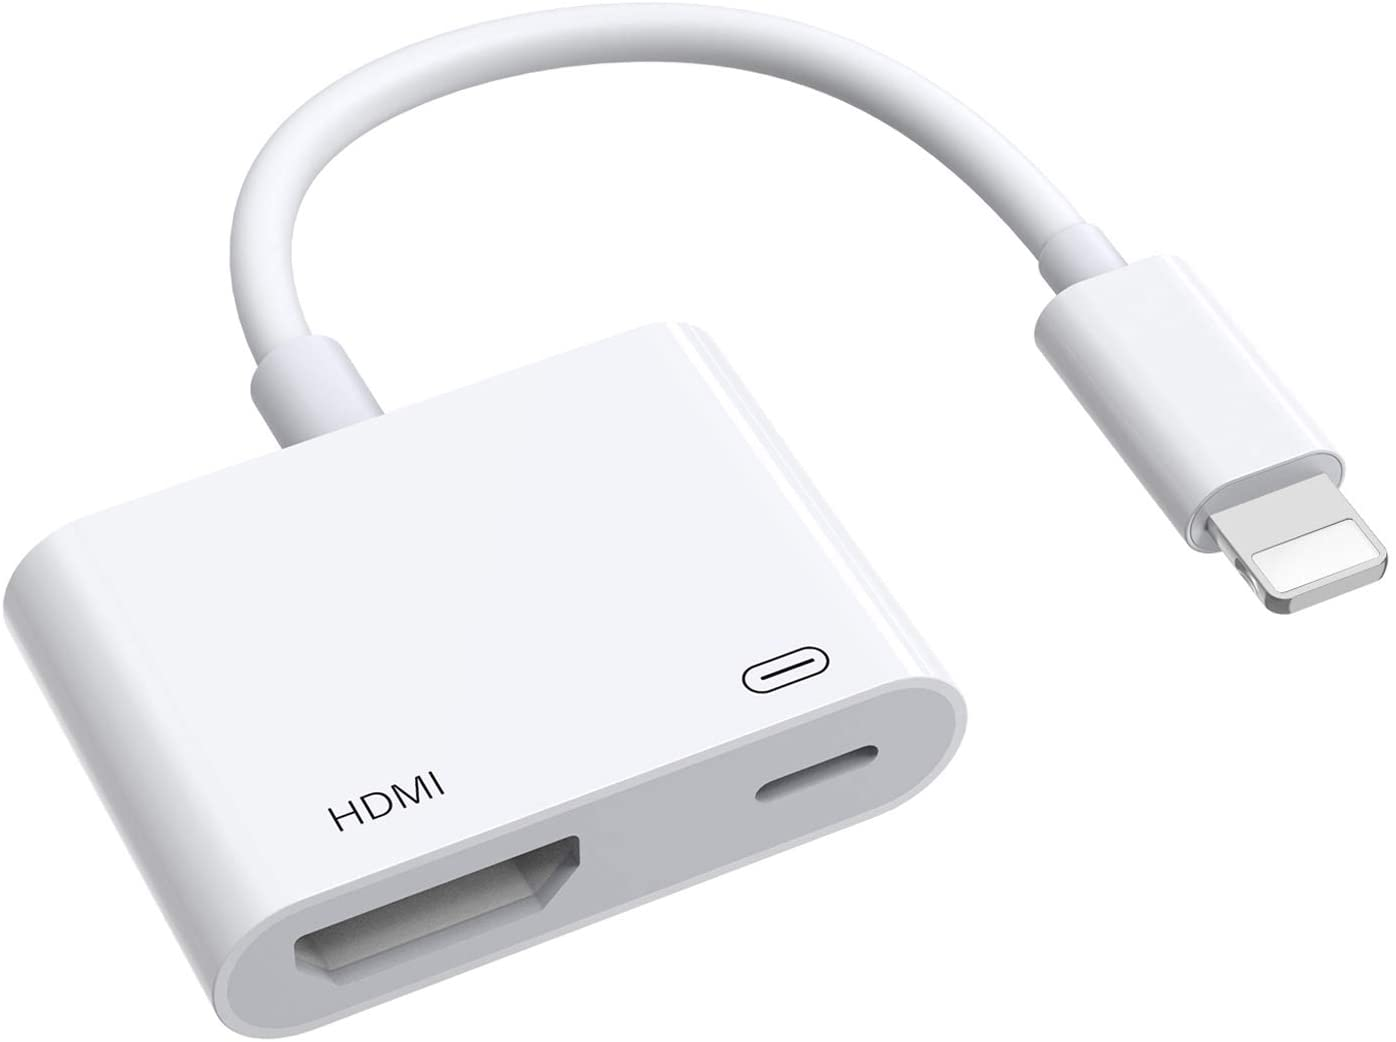 HDMI Adapter for iPhone to TV,1080P Digital AV Adapter for iPhone, iPad, iPod, Sync Screen Connector with Charging Port on HD TV/Monitor/Projector